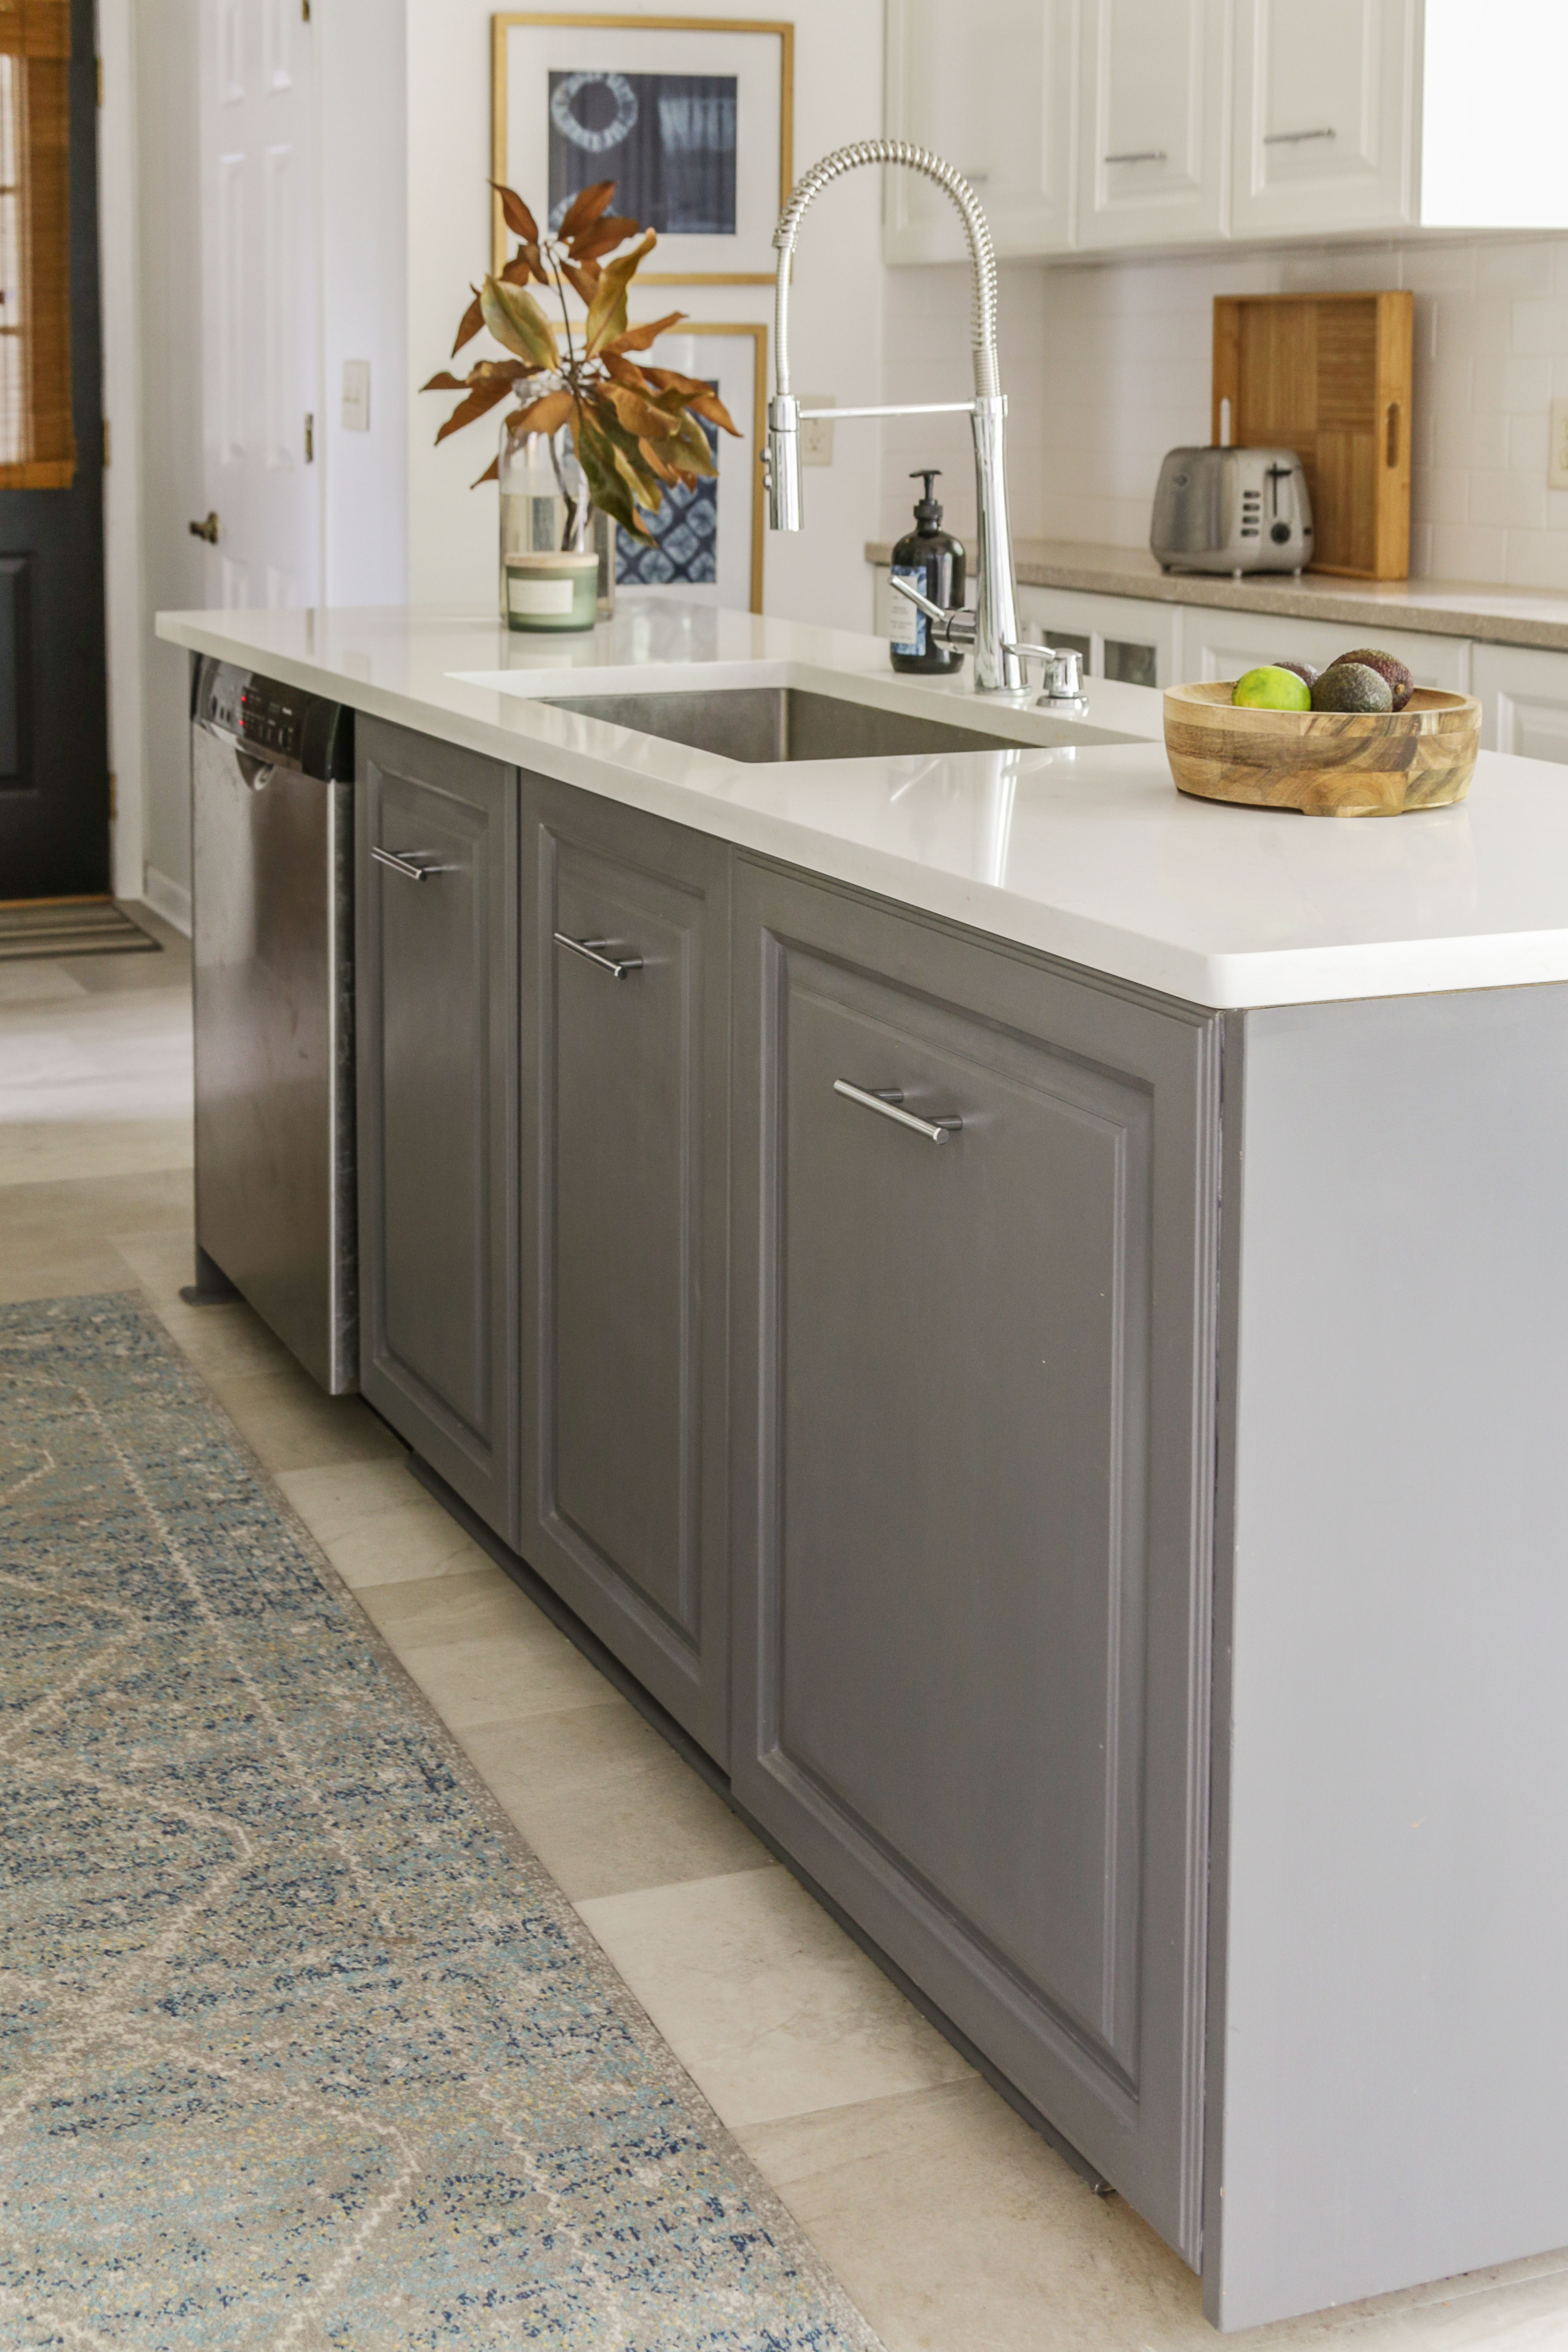 Fine An Honest Review Of My Milk Paint Kitchen Cabinets One Year Home Remodeling Inspirations Basidirectenergyitoicom